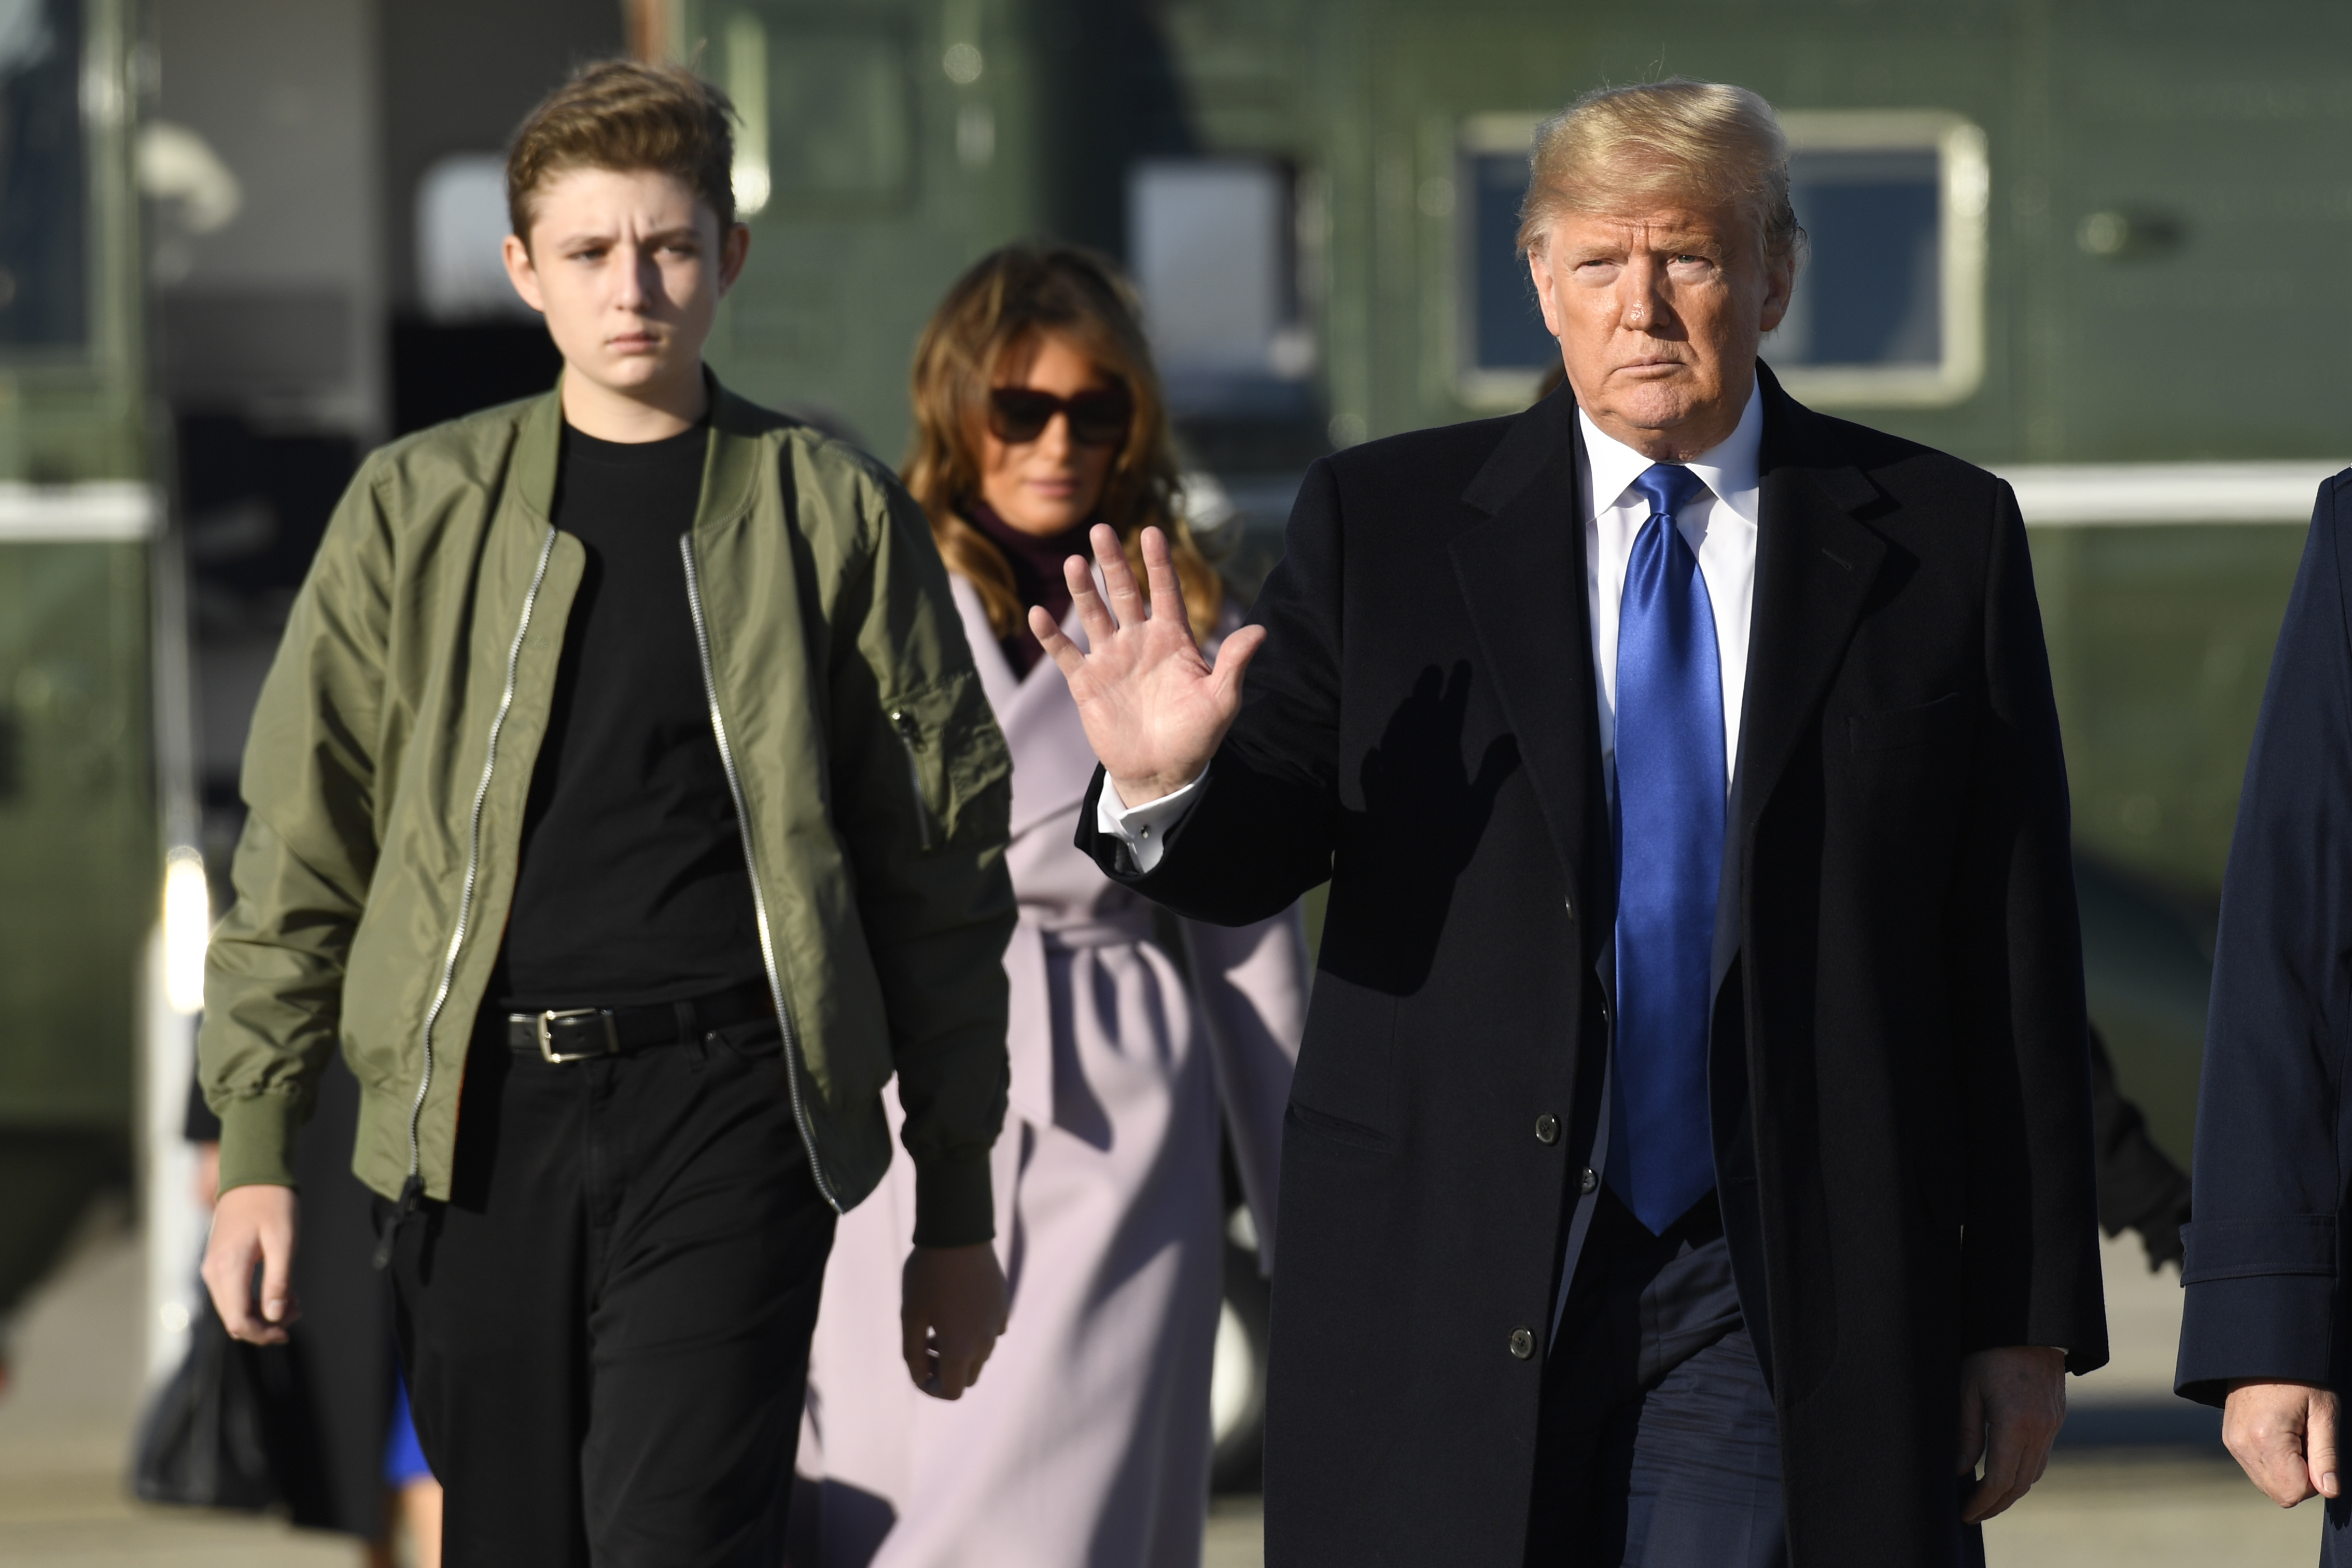 Wkrg Barron Trump S Private School To Stay Closed For Now